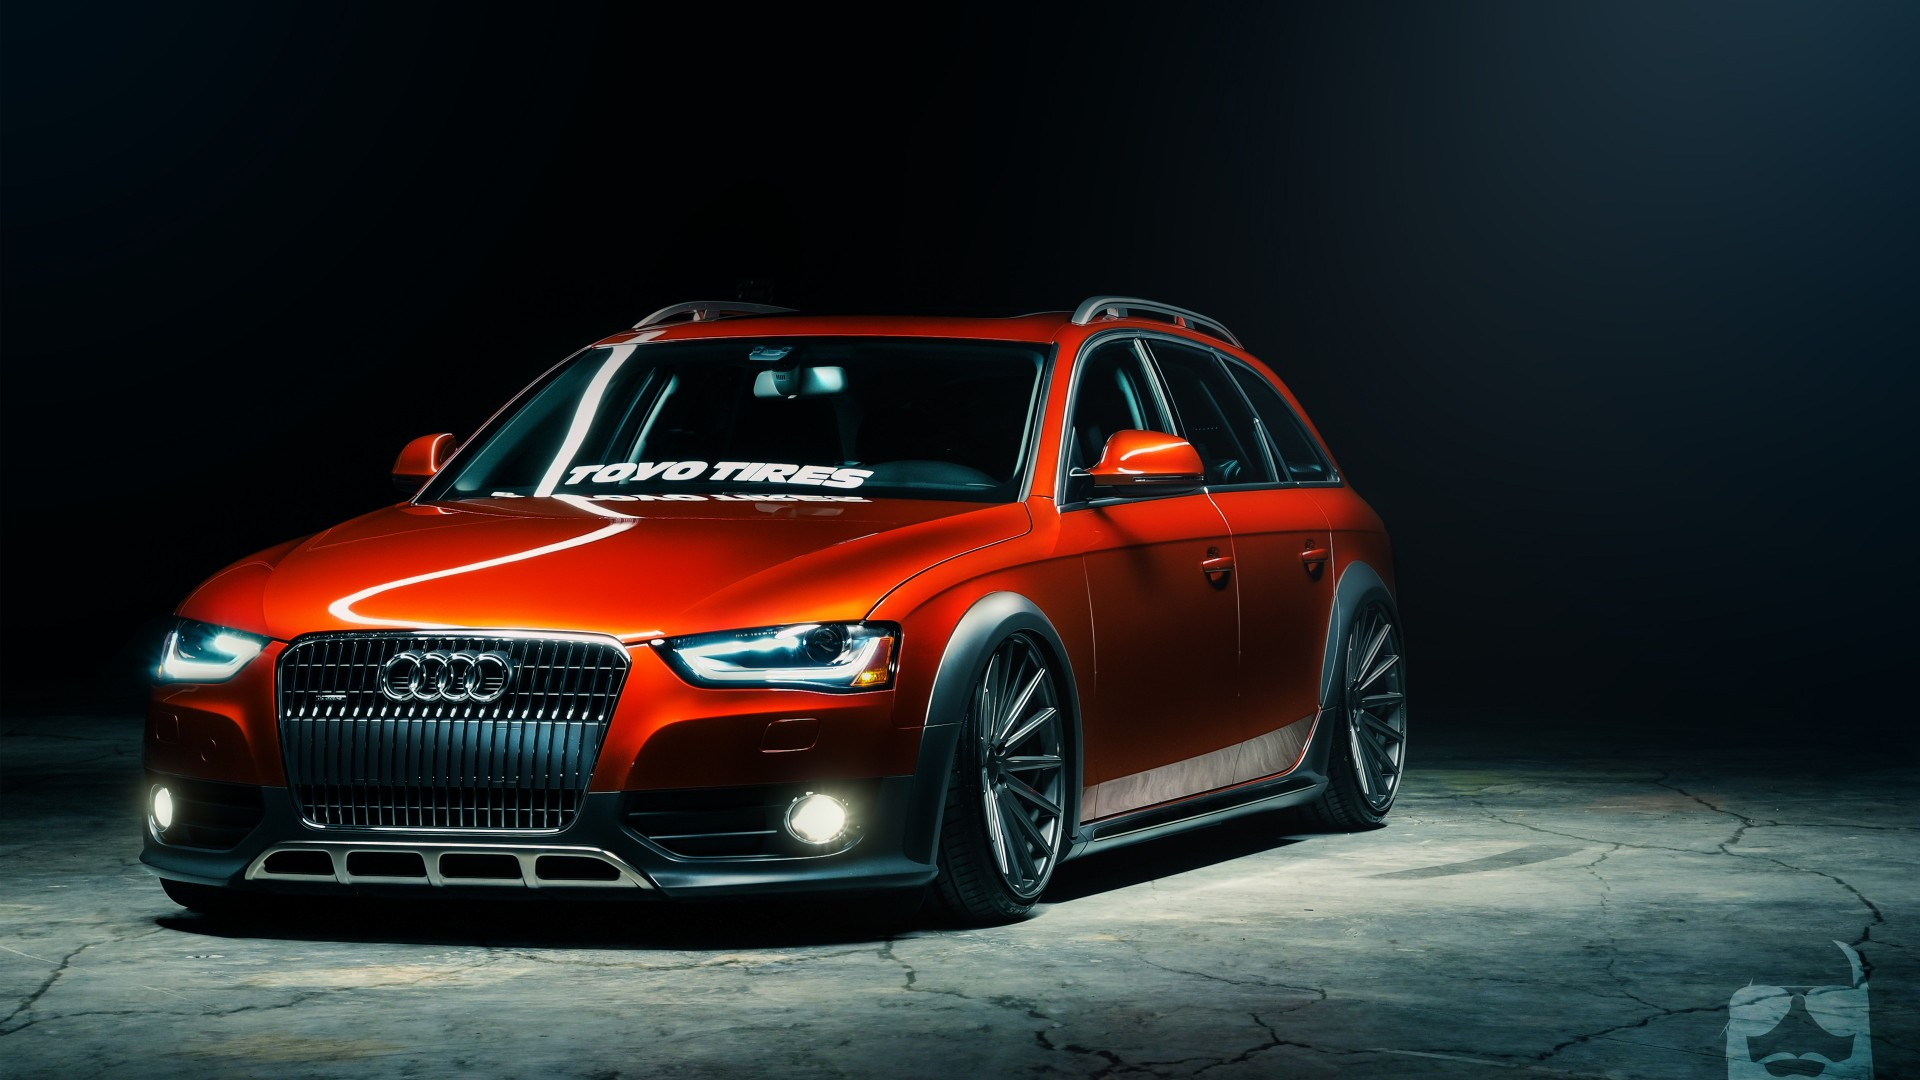 Audi A4 Iphone Wallpaper Audi Allroad Wallpaper Hd Car Wallpapers Id 5511